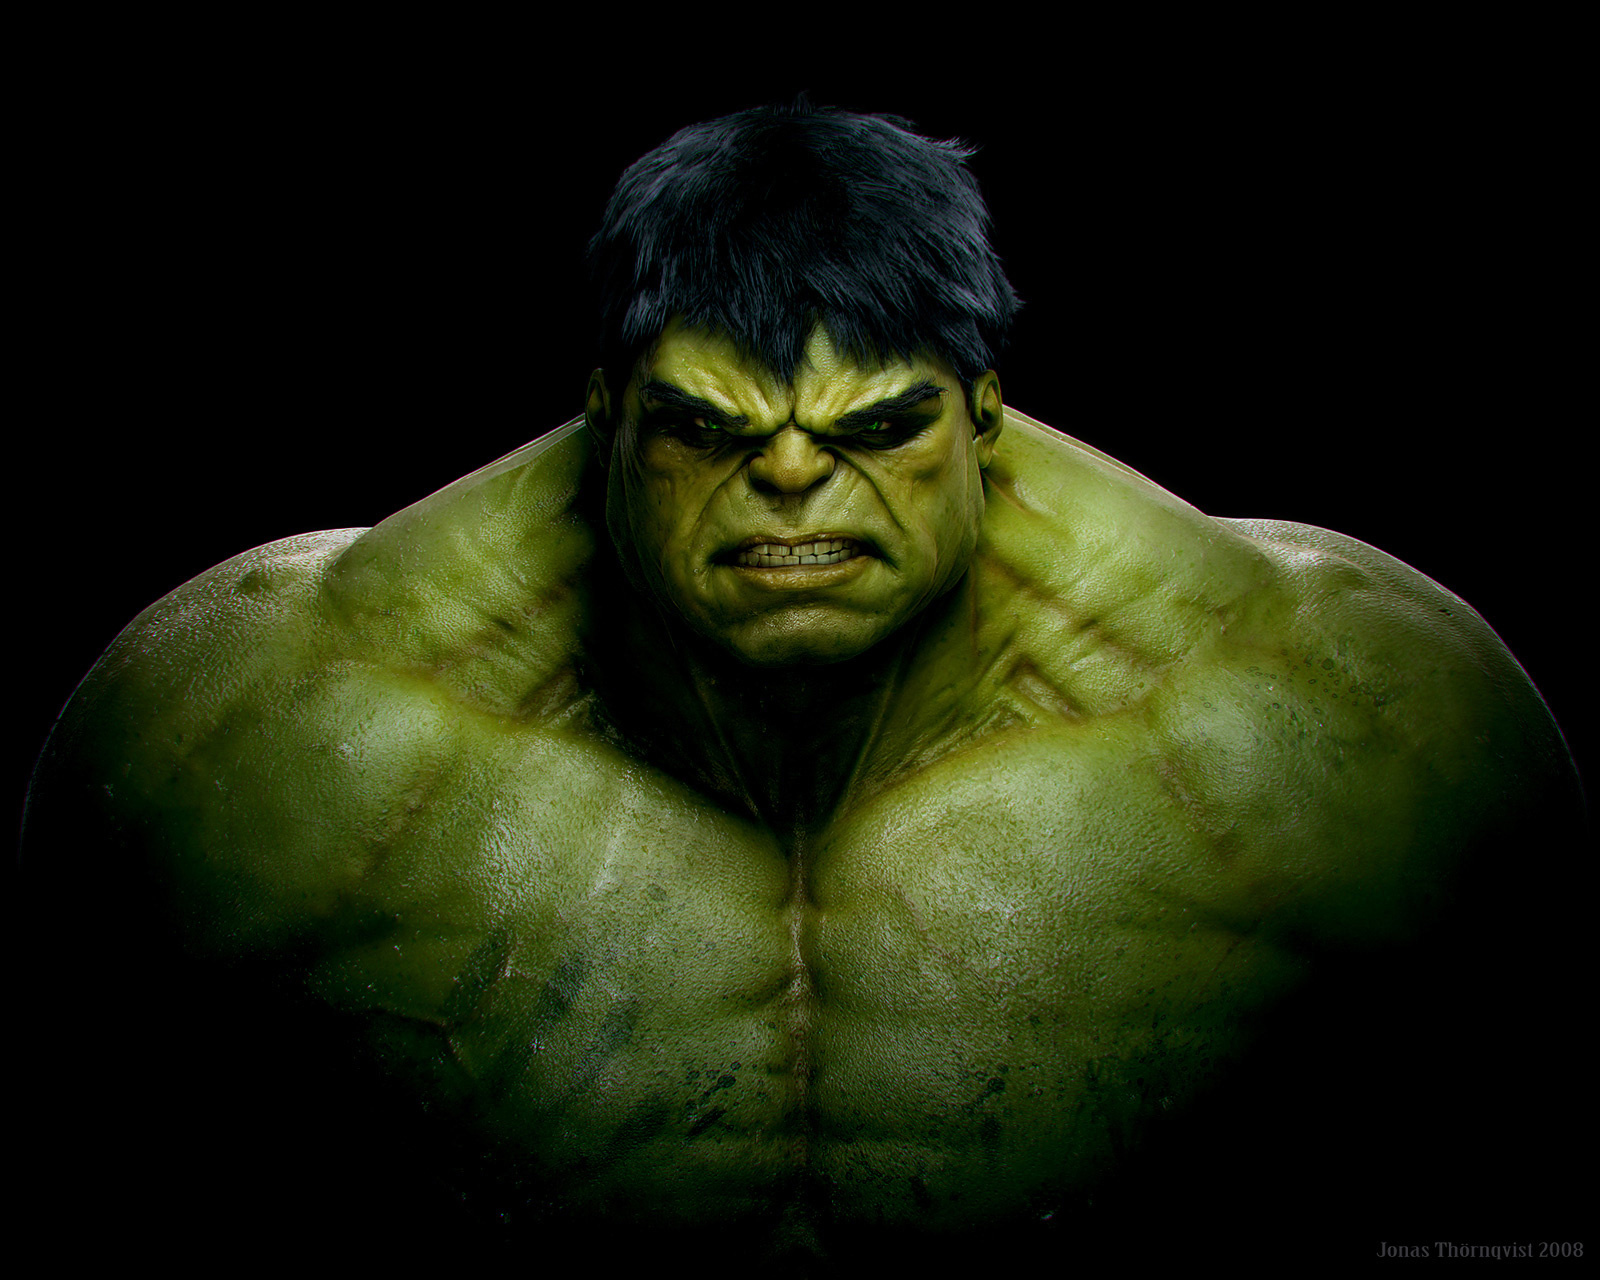 Best-Ever-The-best-Hulk-ever-Hulk-wallpaper-wpc5802805